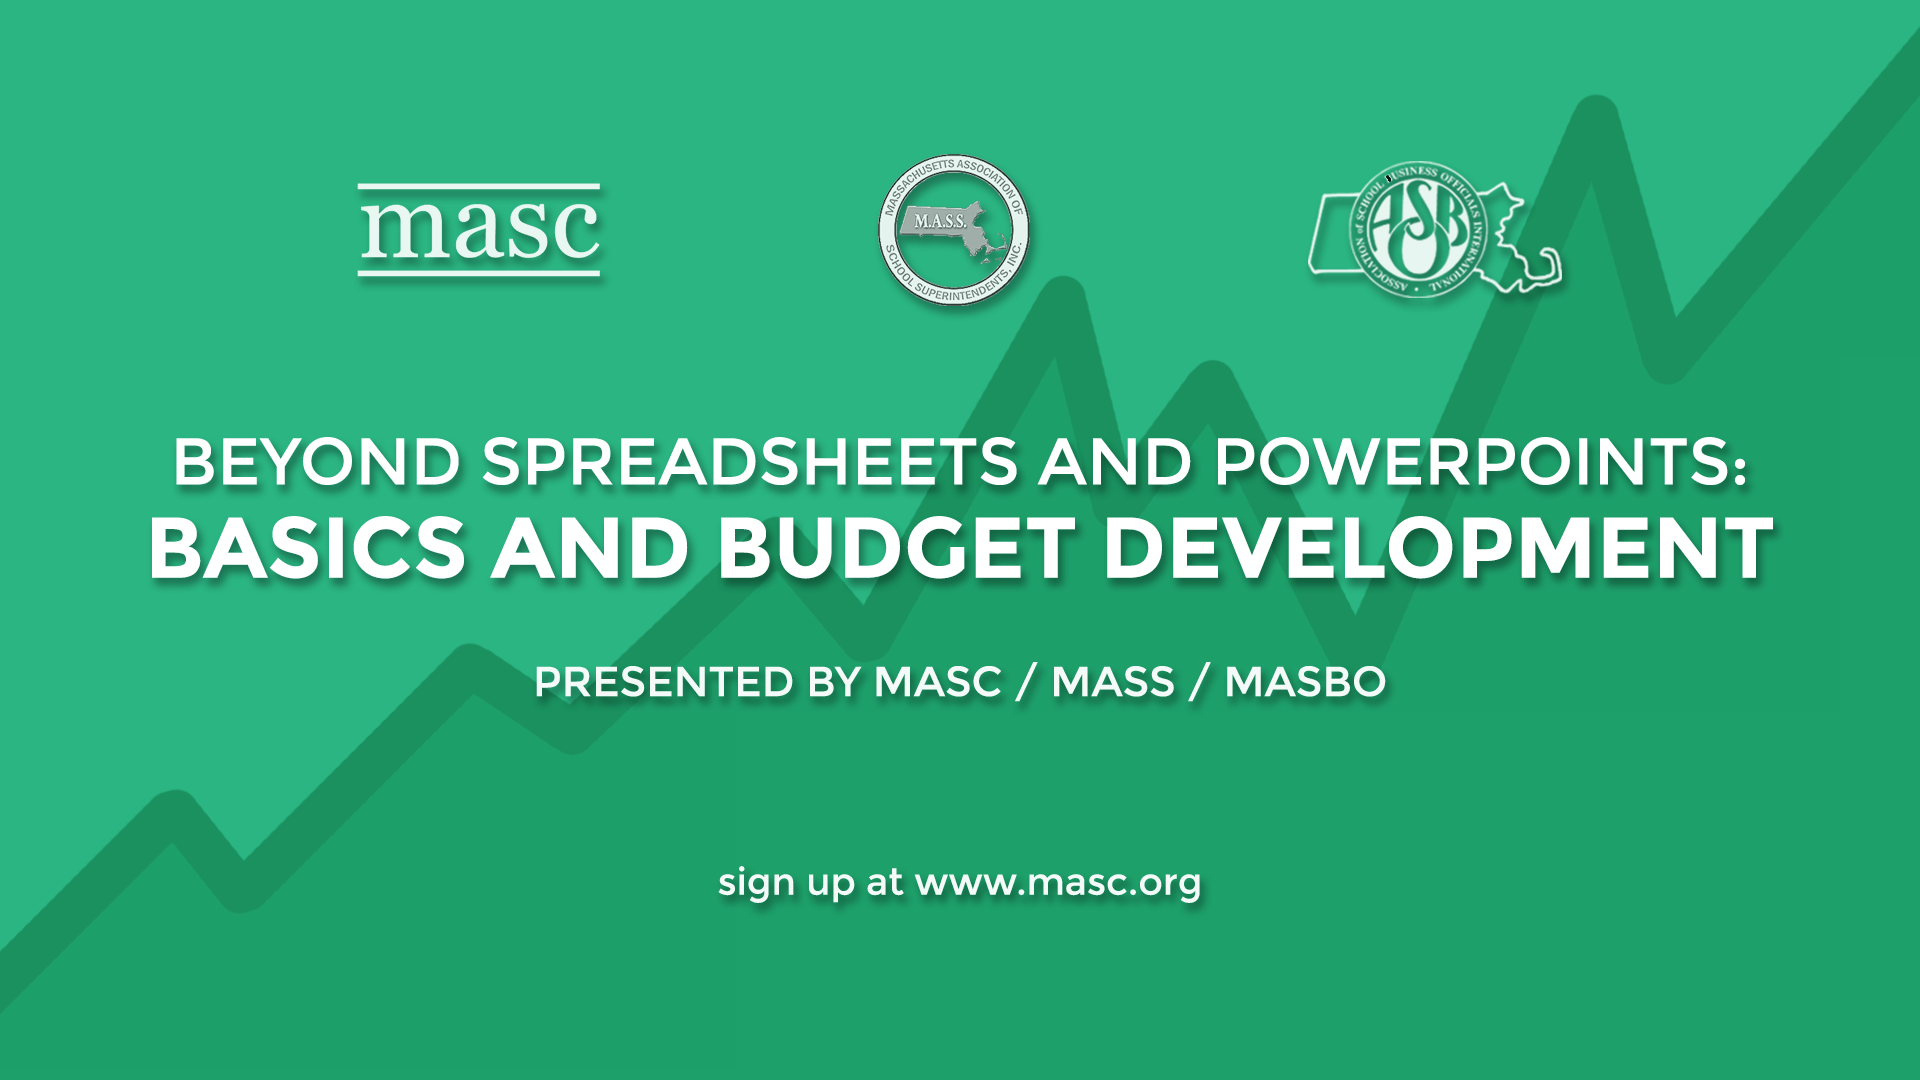 Beyond Spreadsheets and Powerpoints: Basics and Budget Development